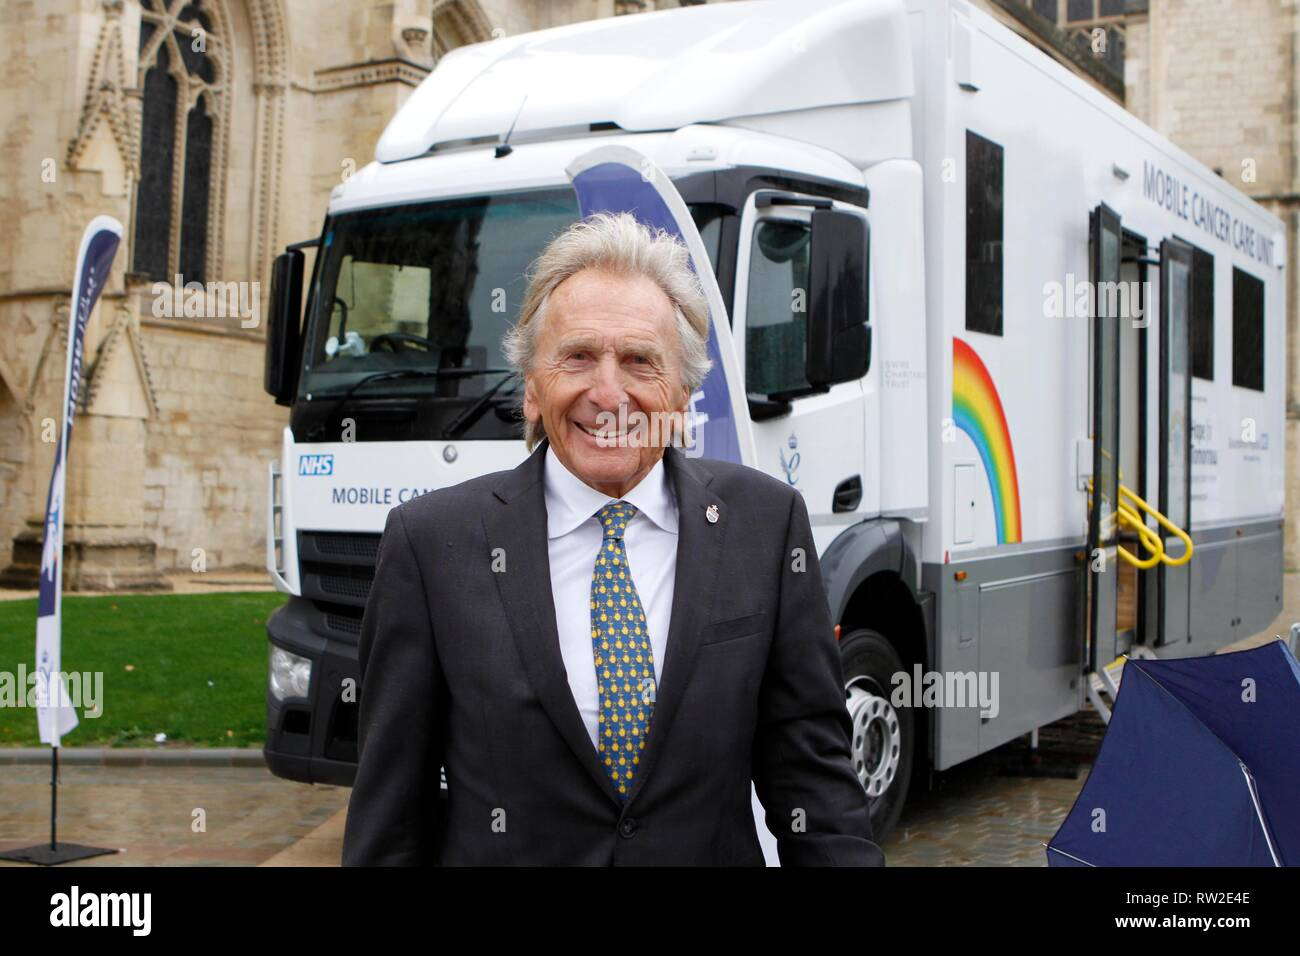 Derek Bell MBE, the hugely successful racing driver, with one of the charity's Mobile Cancer Care Units, parked outside Gloucester Cathedral for the s - Stock Image